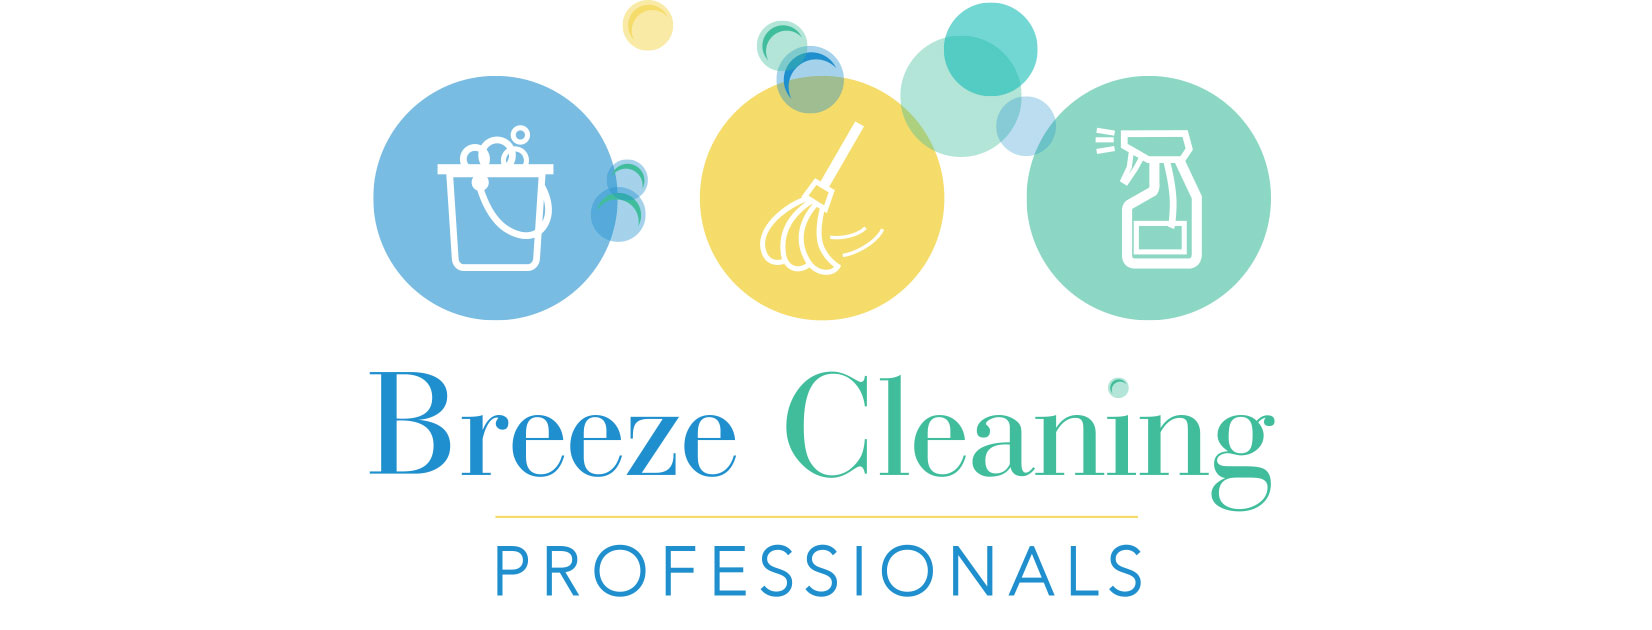 Cleaning Services Logos Design Home Mansion